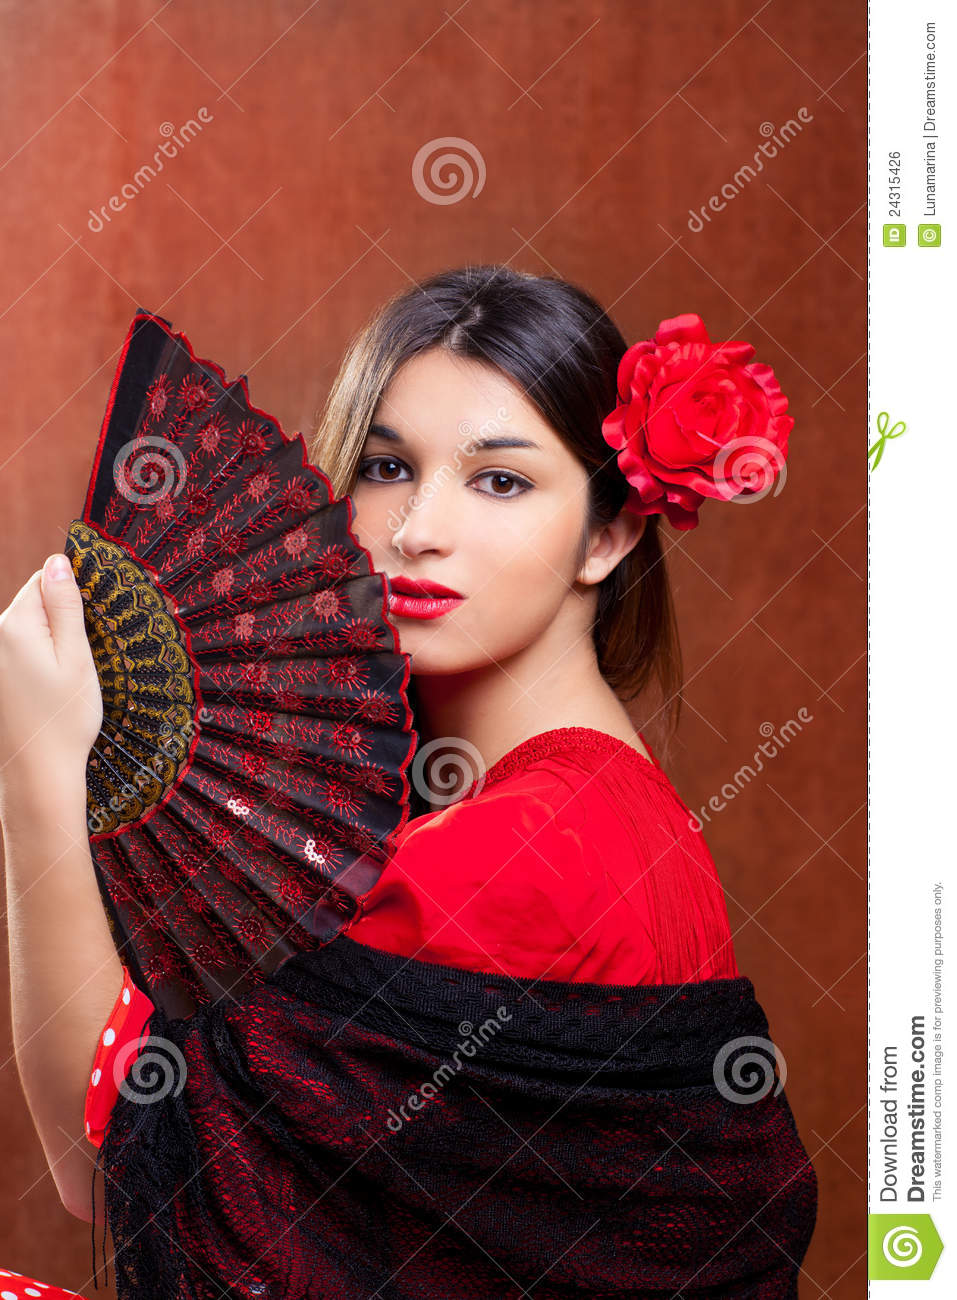 Flamenco Dancer Spanish Girl With Fan Cartoon Vector -6326